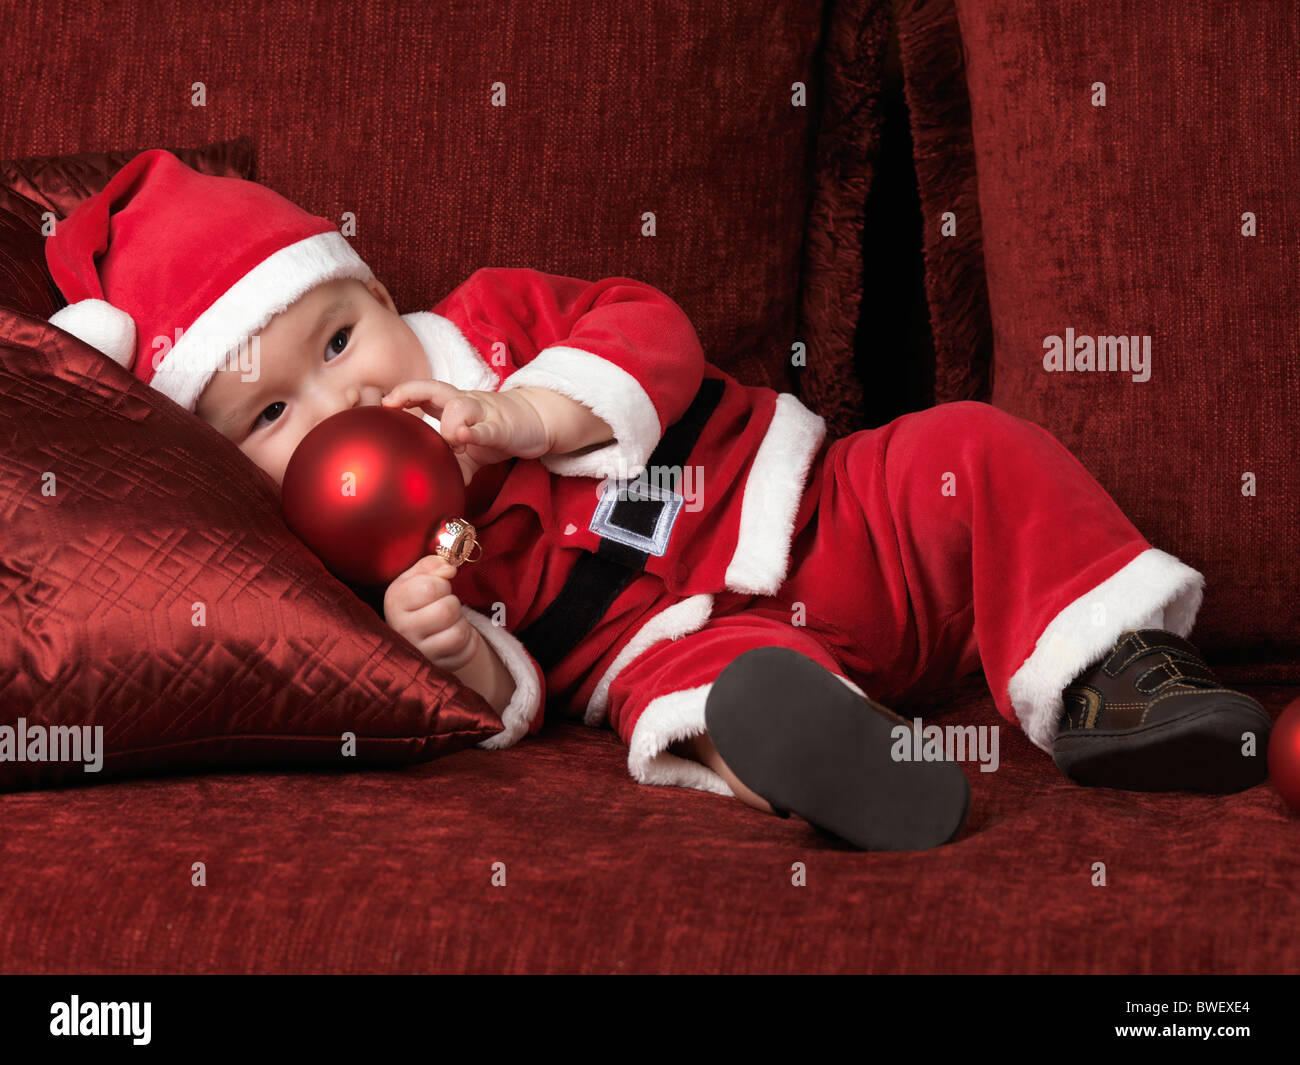 Six month old baby boy in Santa Christmas costume holding a red bauble in his hand - Stock Image